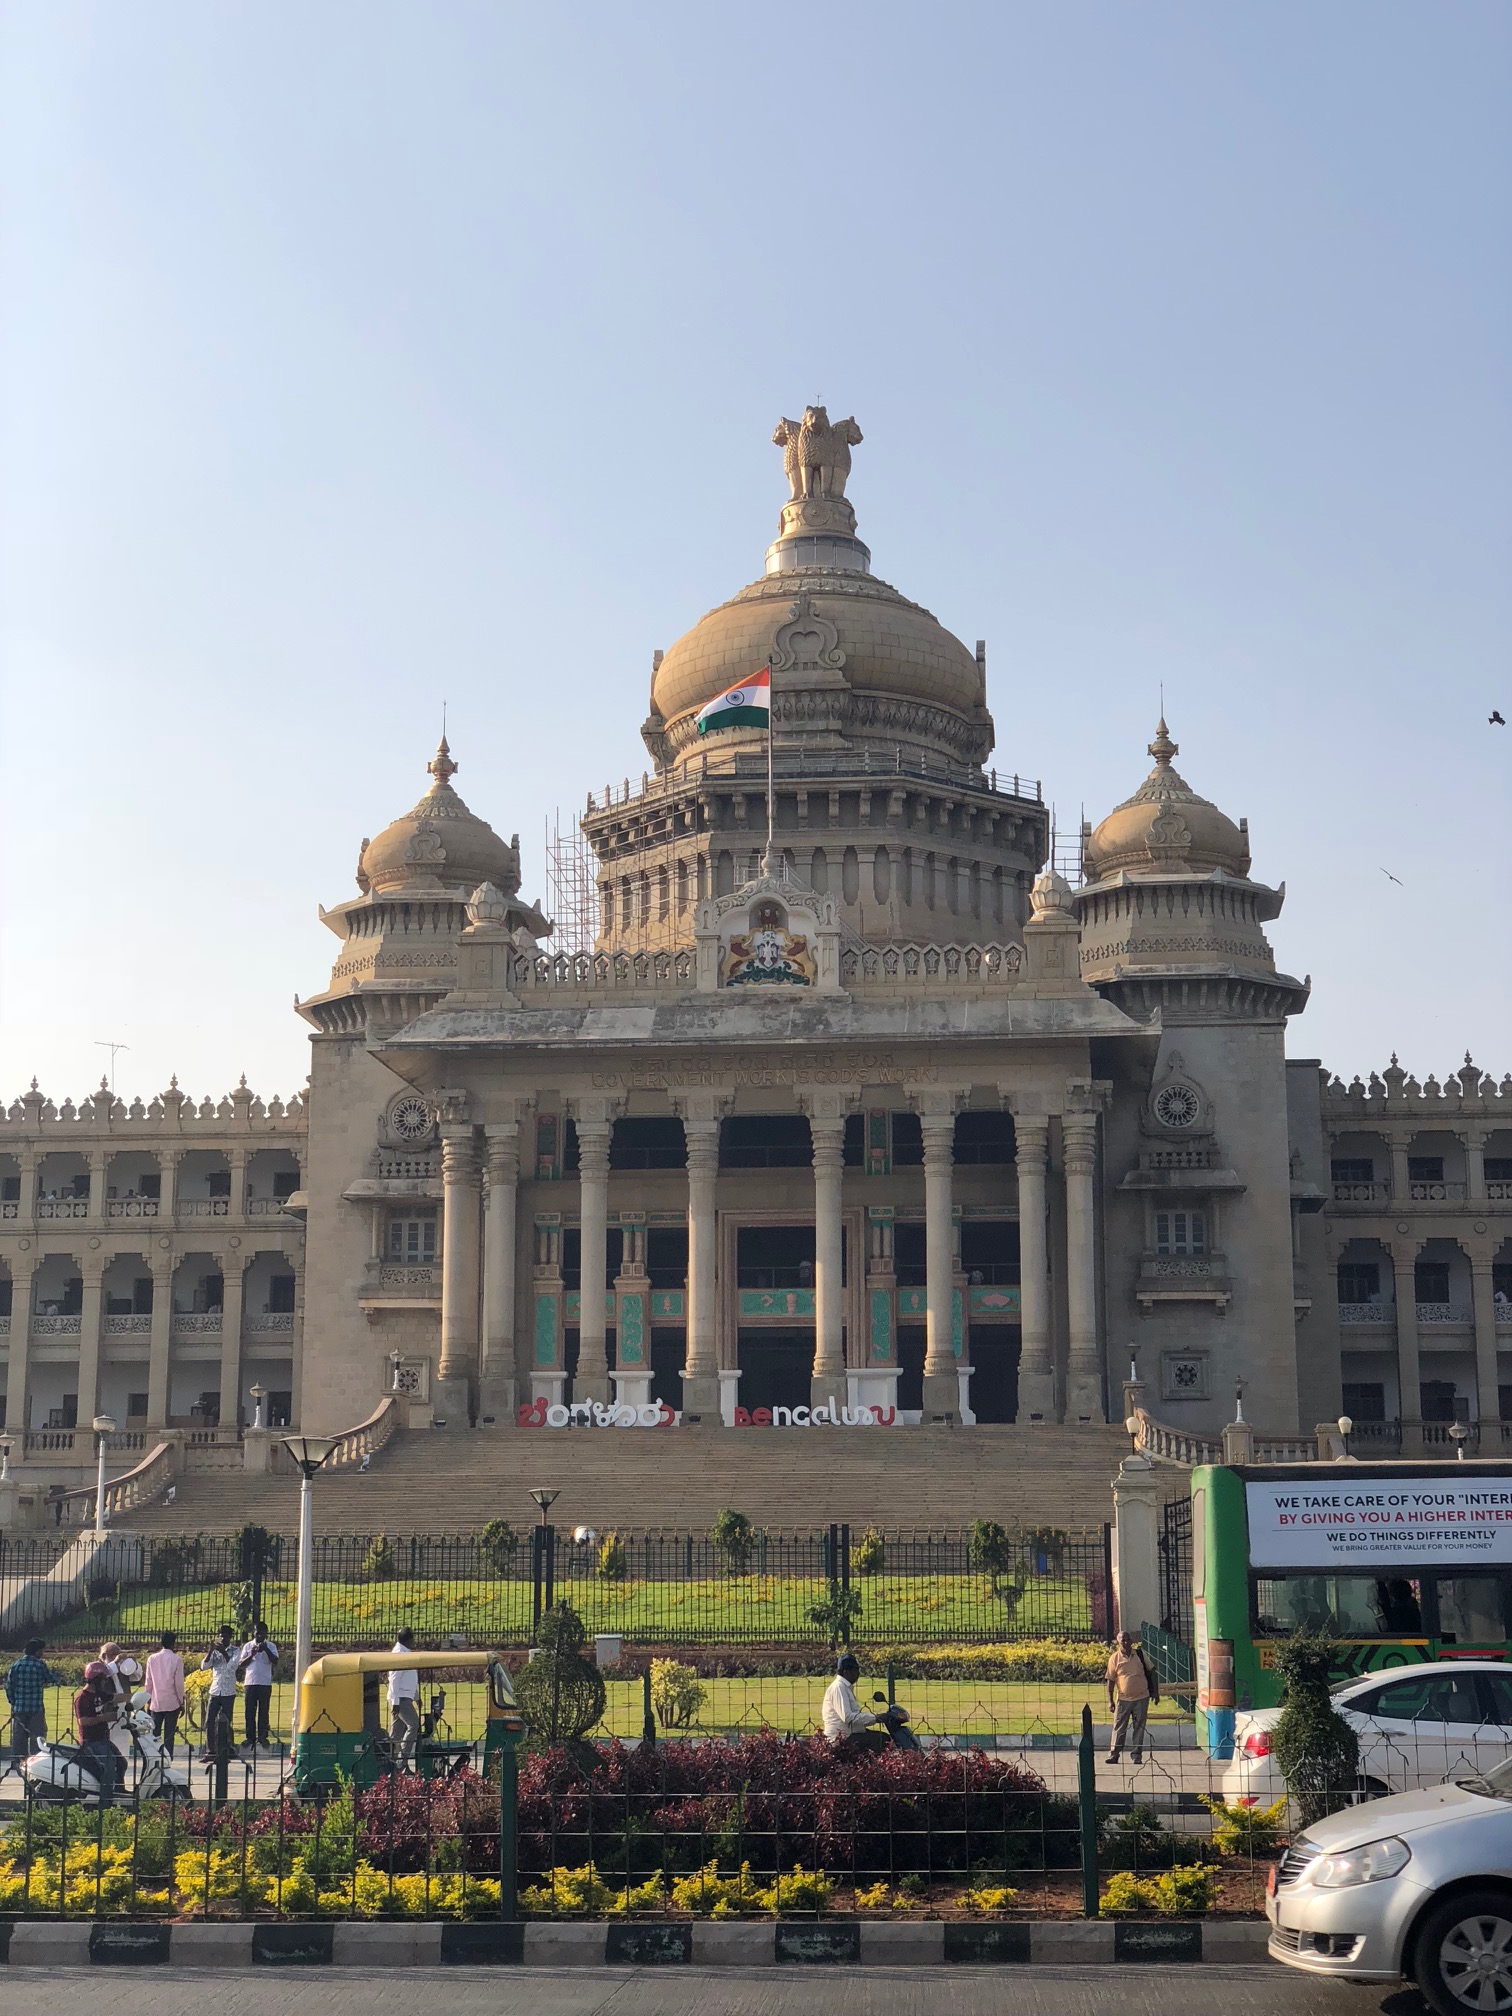 An enormous stone building with columns, culminating in a pointed dome with three lions on top.  The Indian flag of orange, white and green horizontal stripes flies in the breeze.